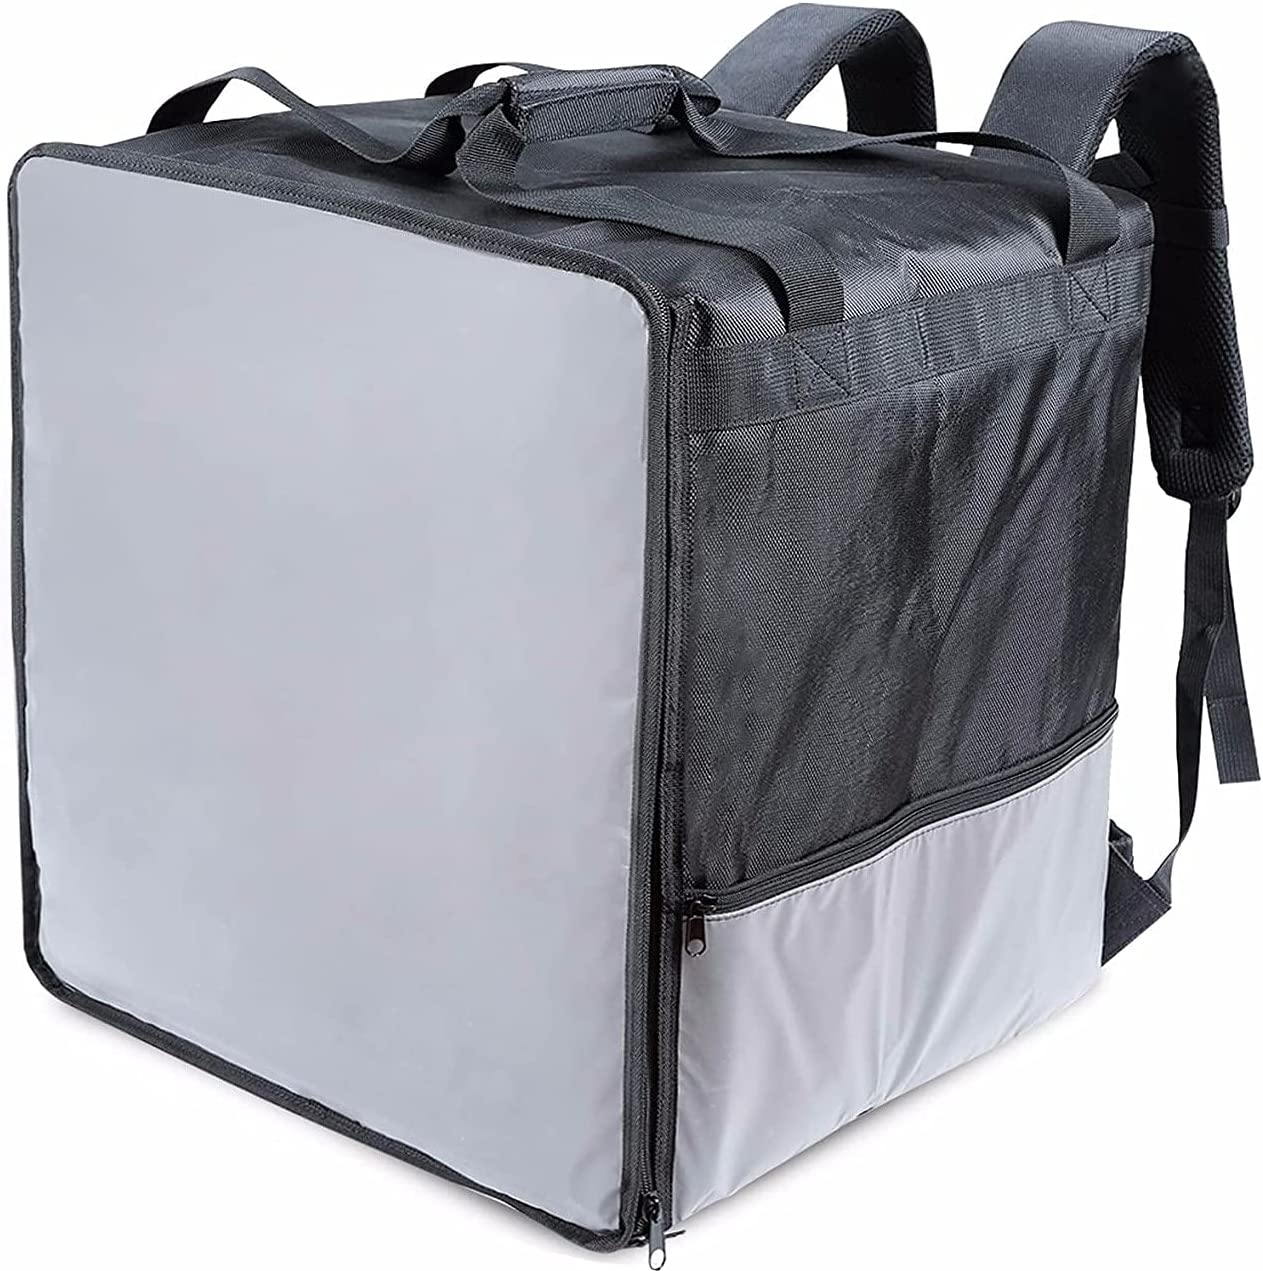 TTHH Max 76% OFF Thermal Insulated Food Delivery Deliver Large Backpack Sale special price